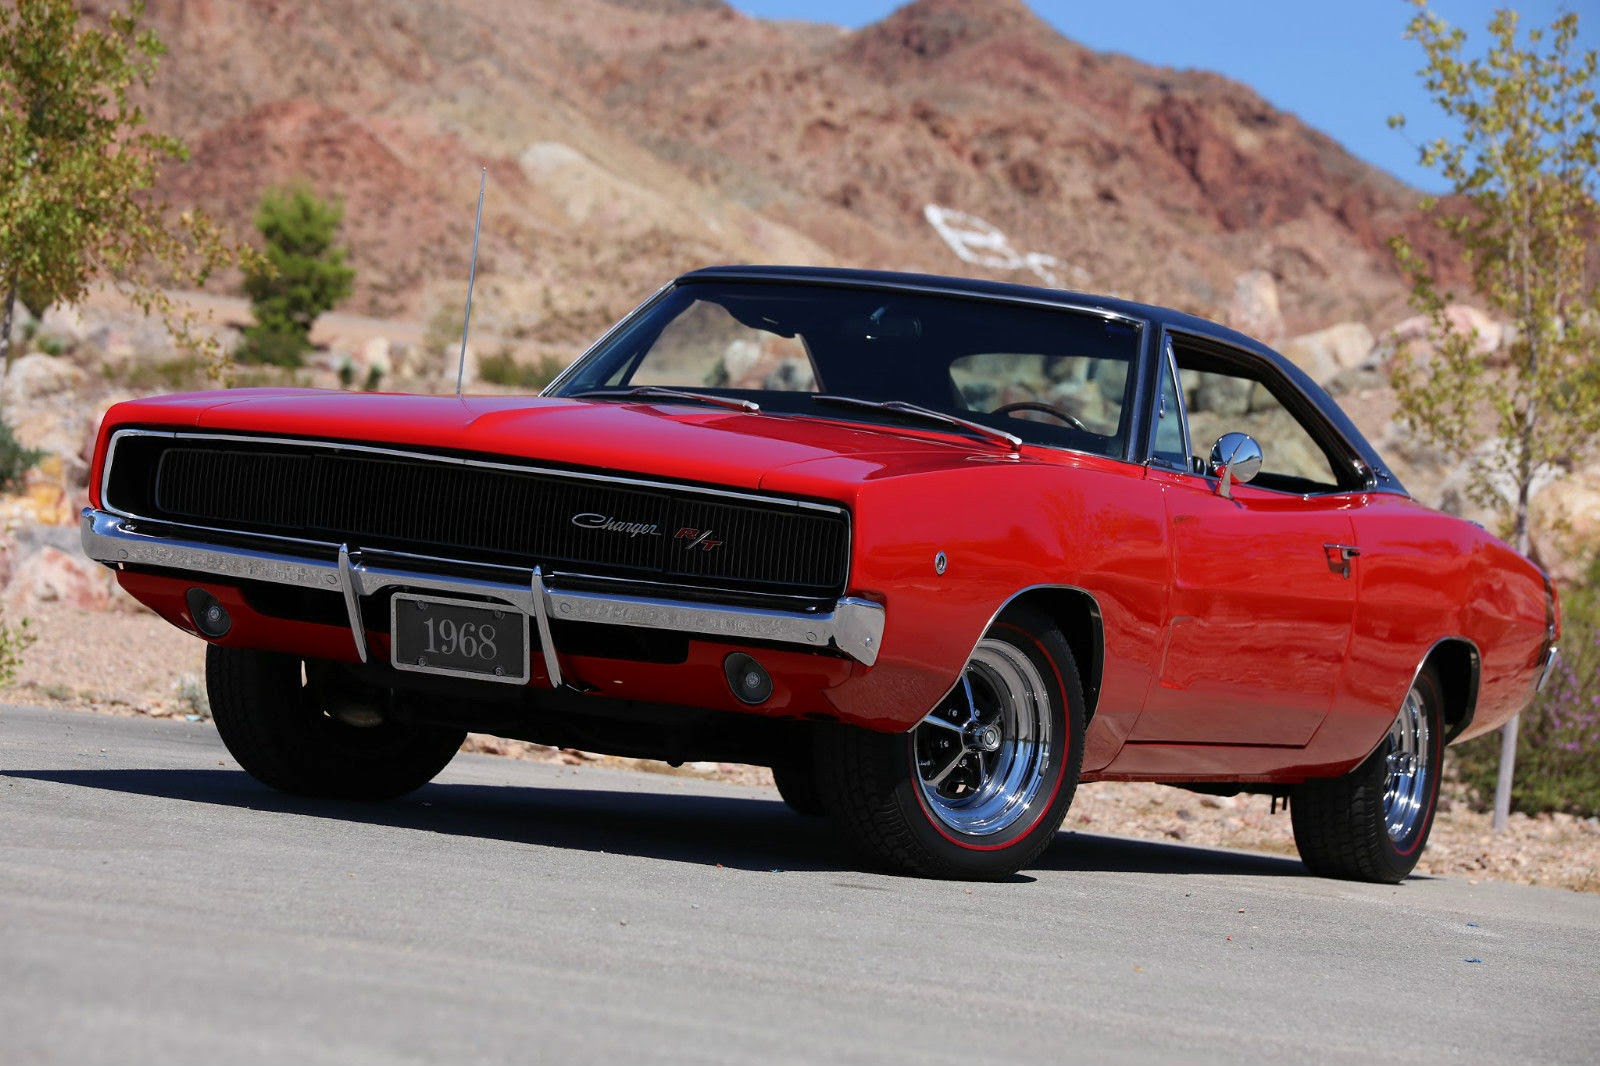 1968 Dodge Charger R T 440 Complete Restoration Auto Restorationice 1949 Comes With Big Block Engine Paired Automatic Transmission Has Drives And Functions Like A New Car